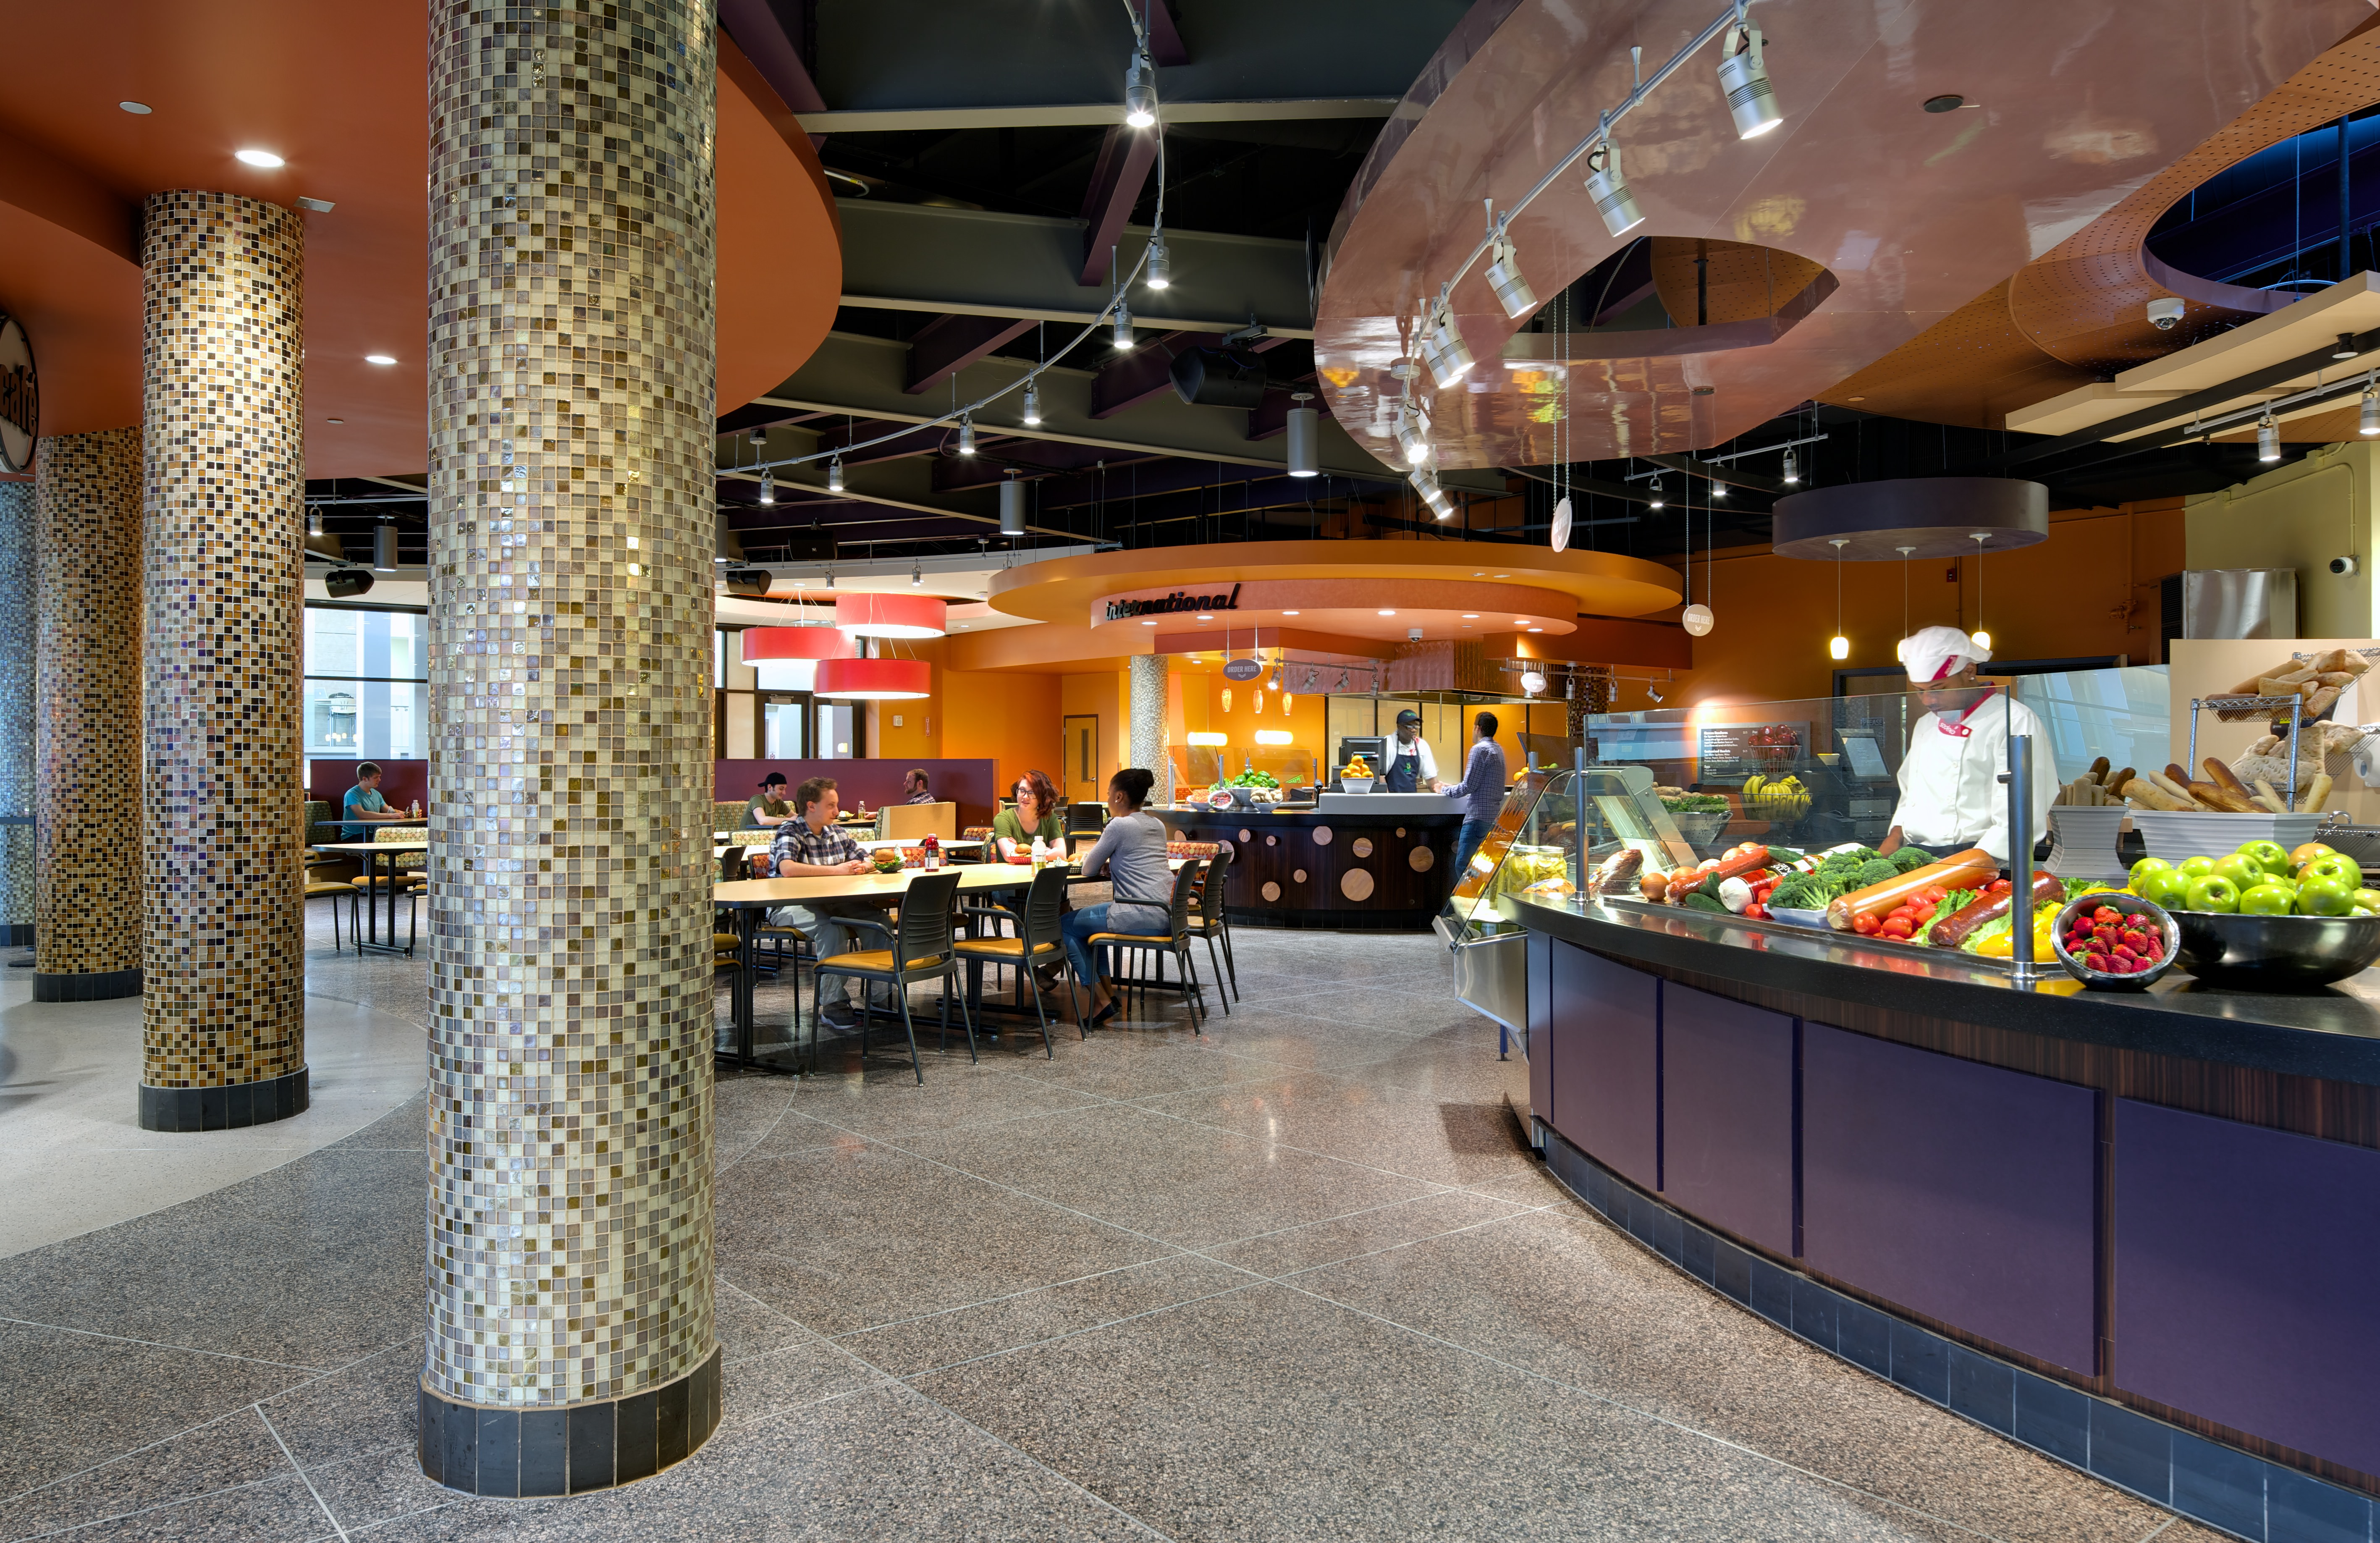 Binghamton Dining Commons Connor Architecture